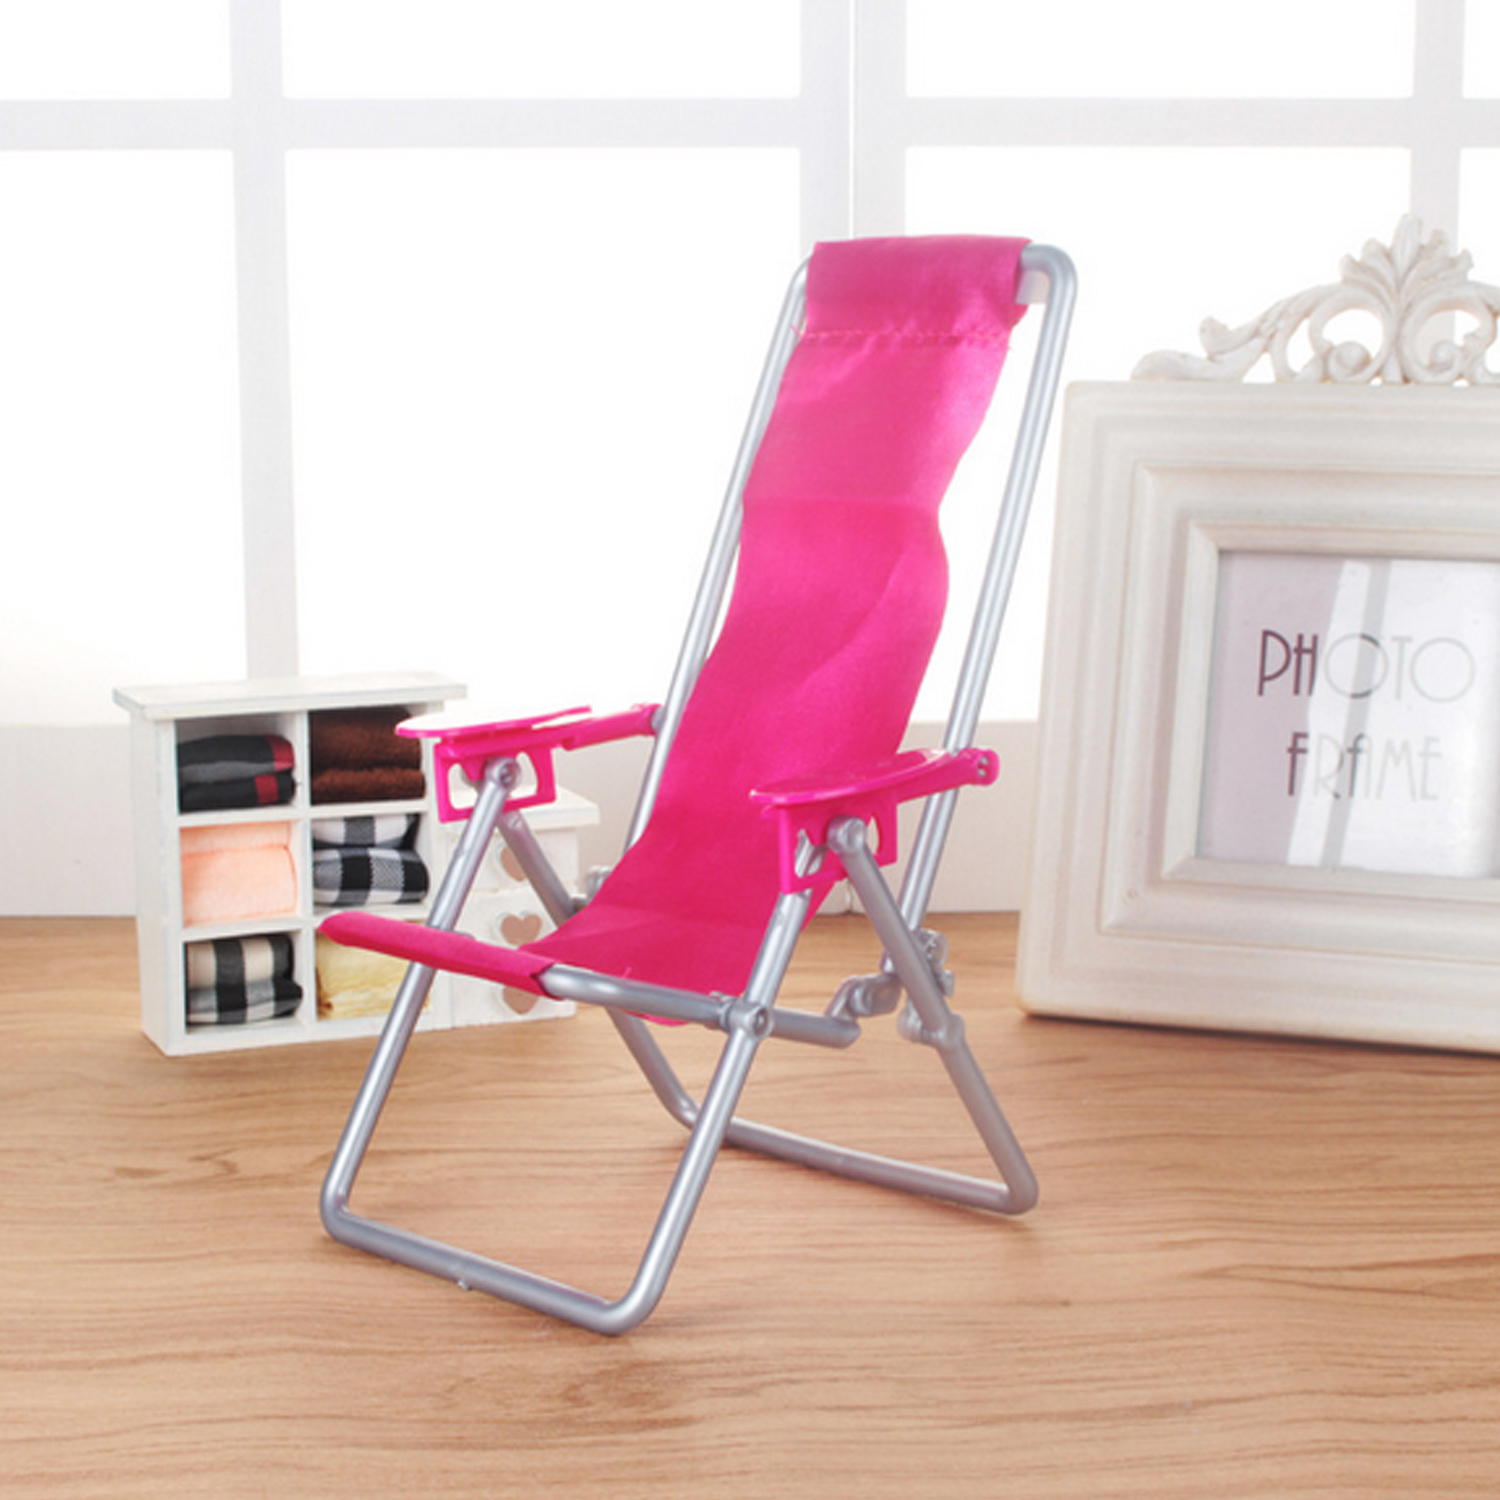 Besegad Cute Mini Miniature Foldable Plastic Beach Chair Accessories Toy Props for Barbie Doll House Kids Girls Birthday Gifts